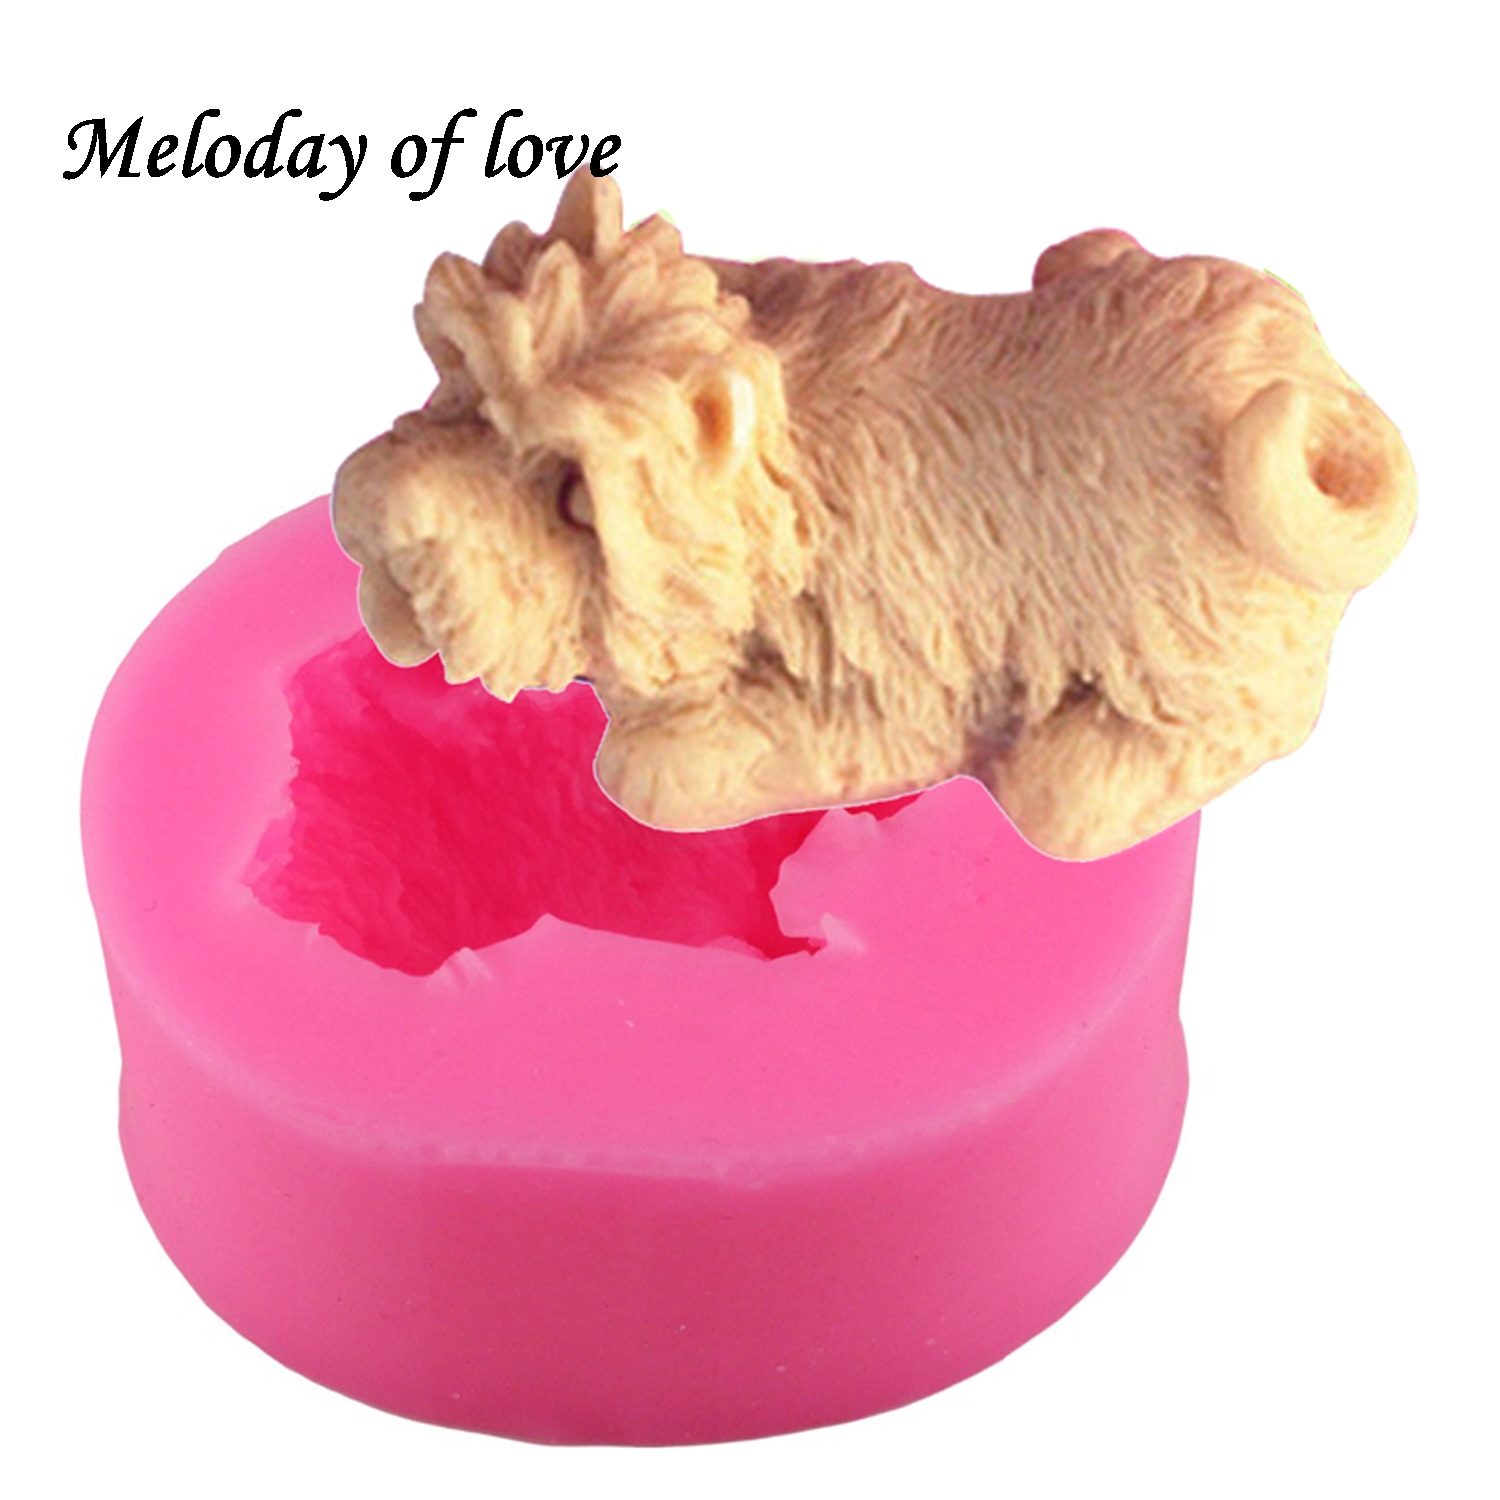 3D Ature schnauzer Dog handmade soap mold chocolate cake decorating tools DIY fondant silicone mold Flexible Baking Mold T0169